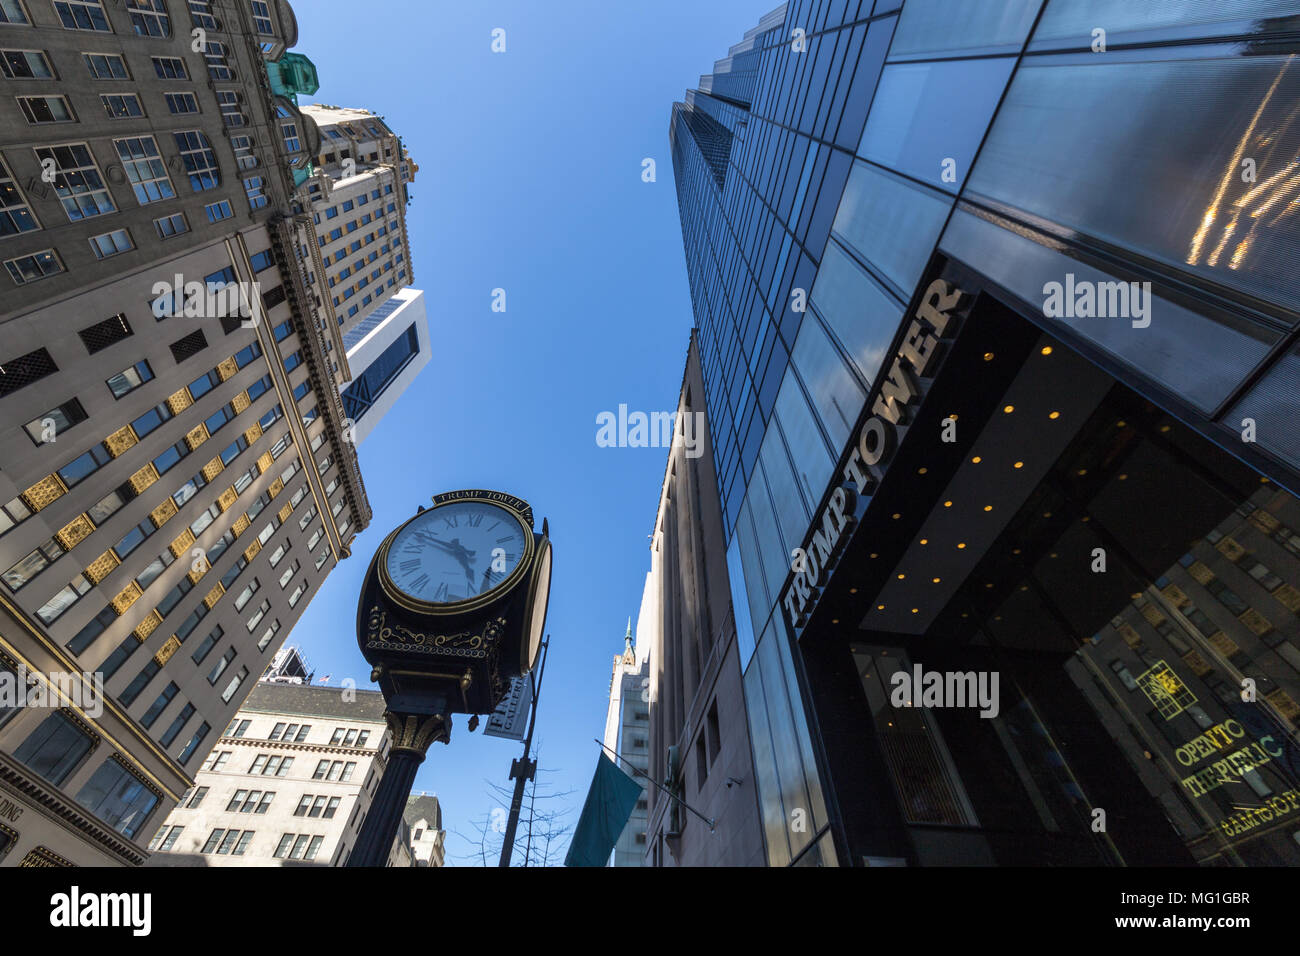 Trump Tower, NYC - Stock Image